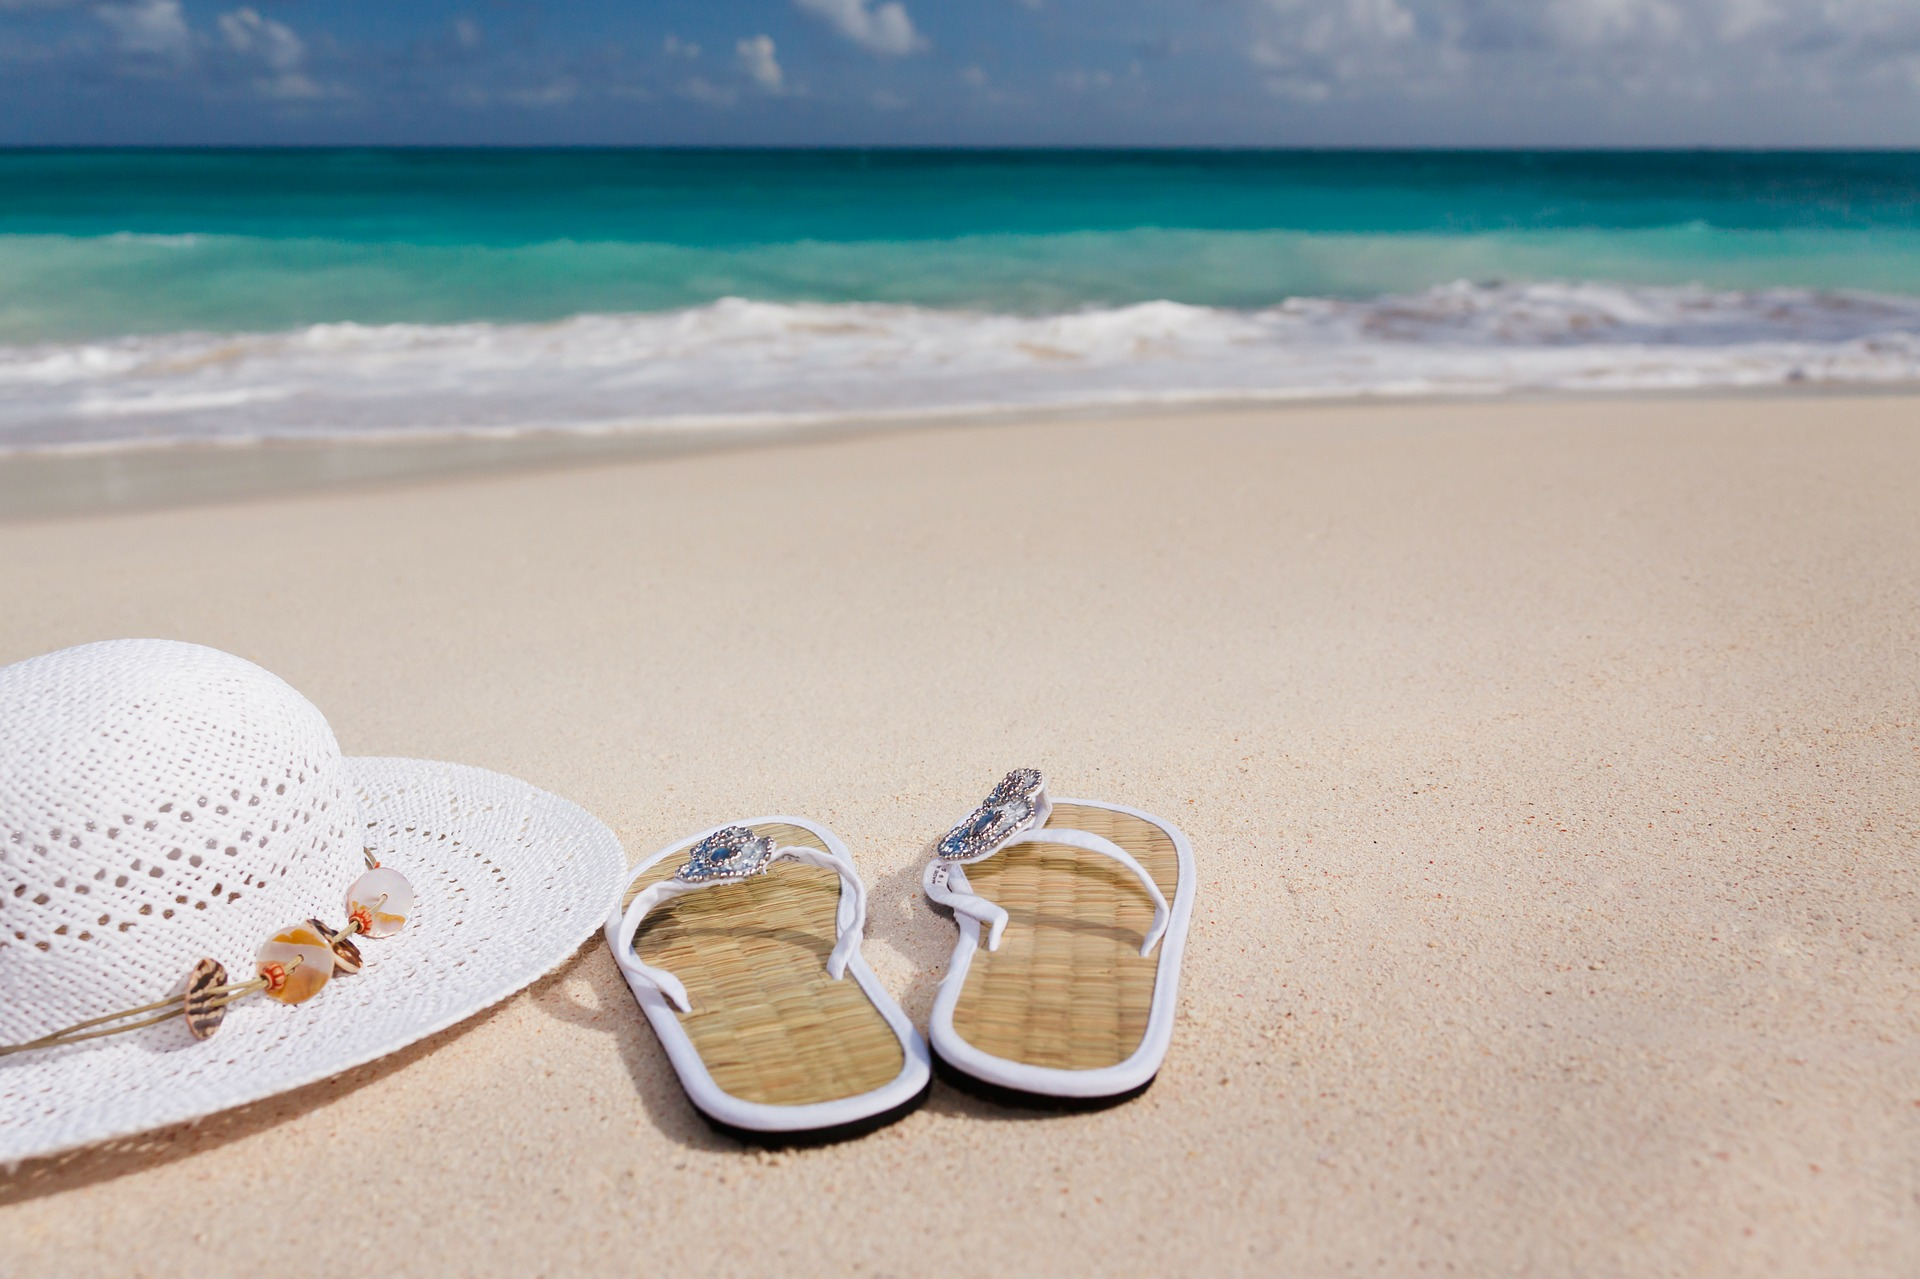 sandals and hat on a beach on a summer holiday